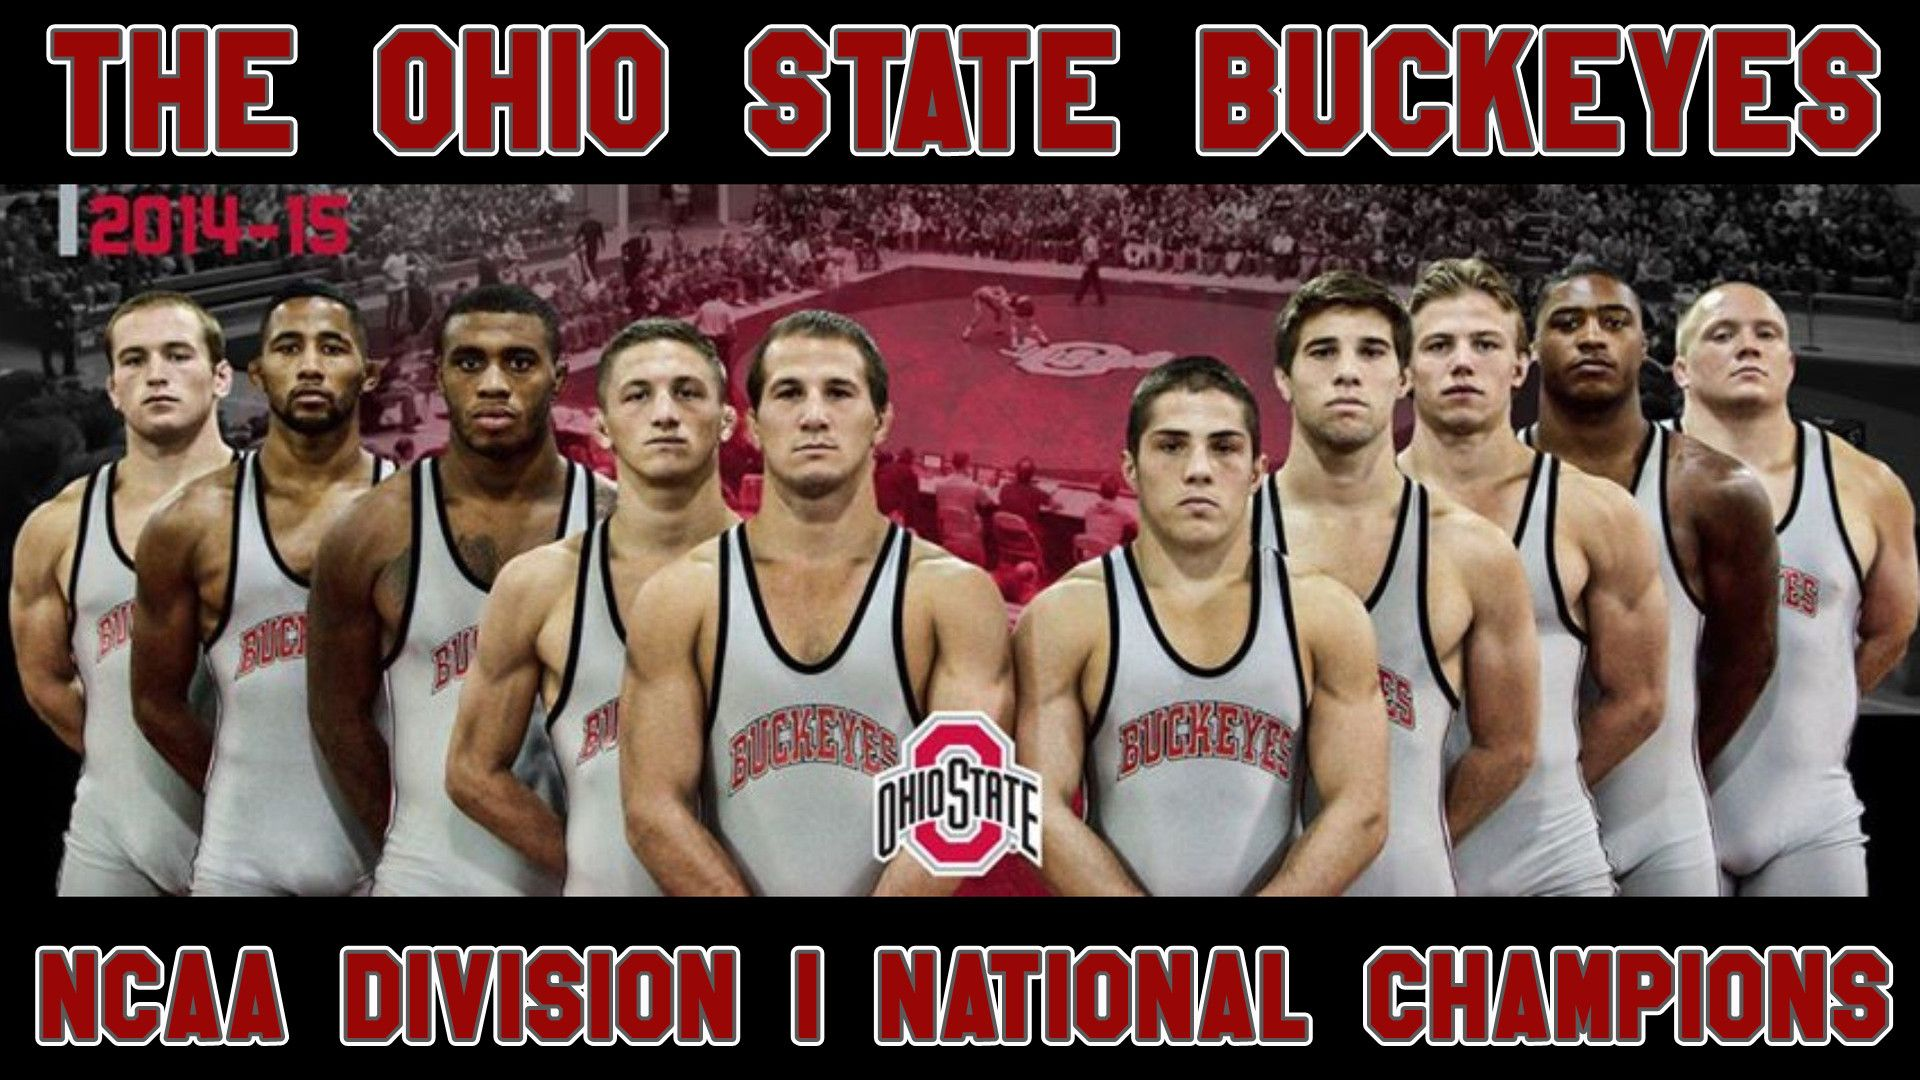 The Ohio State Buckeyes 2015 Ncaa Division 1 National Wrestling